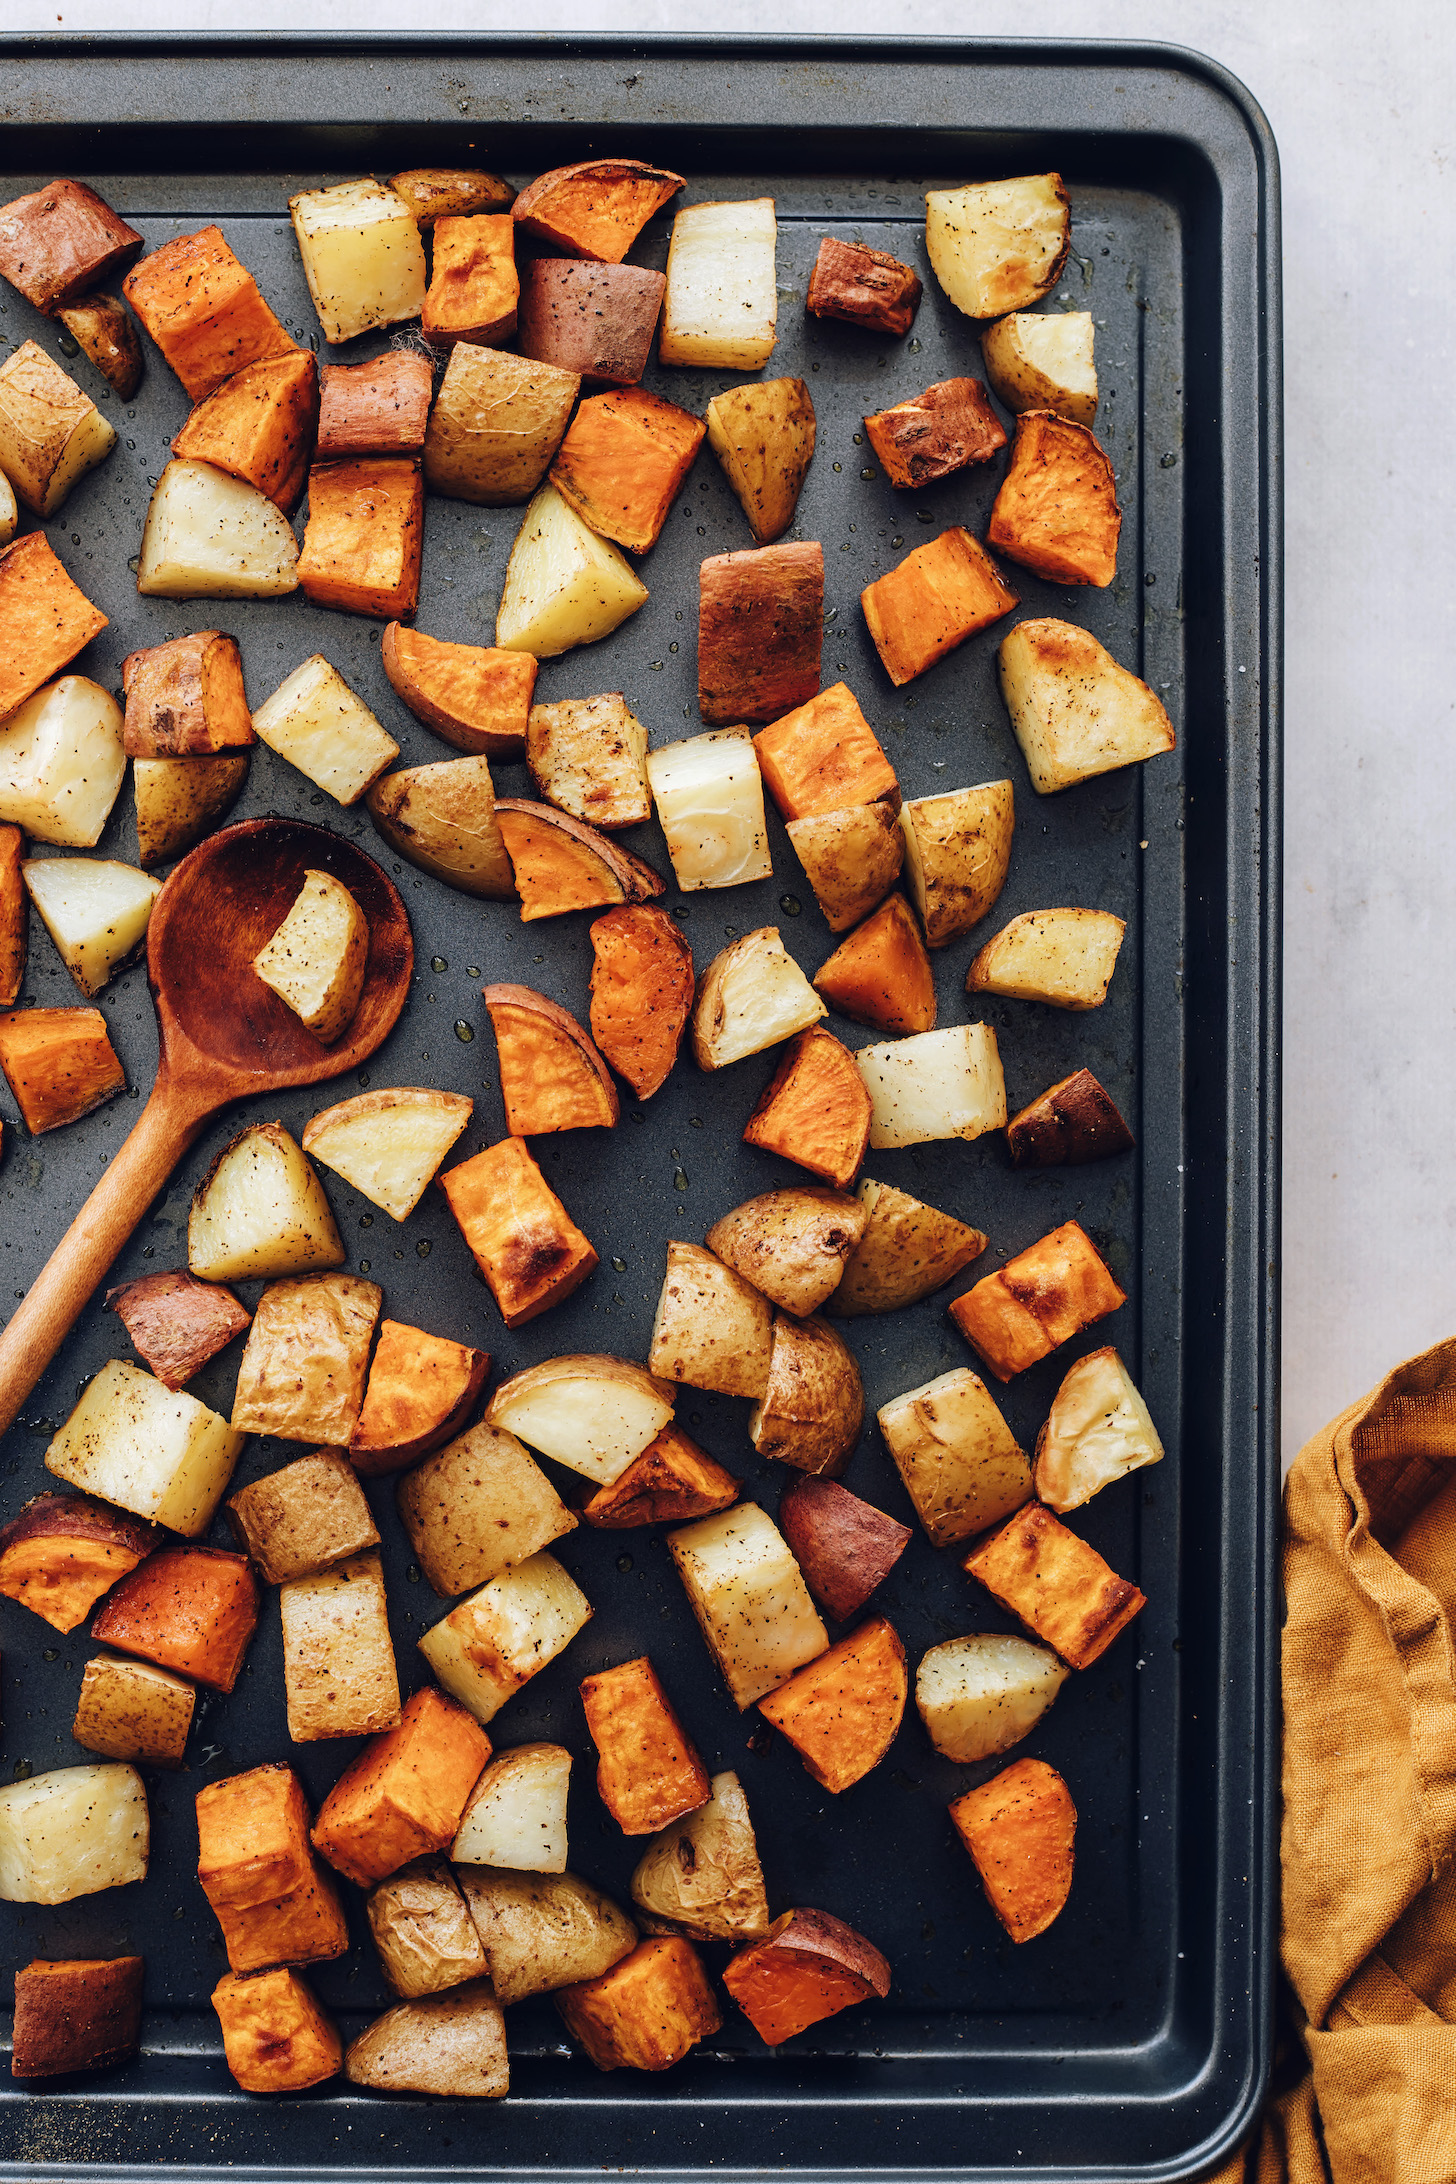 Wooden spoon on a baking sheet of roasted gold and sweet potatoes